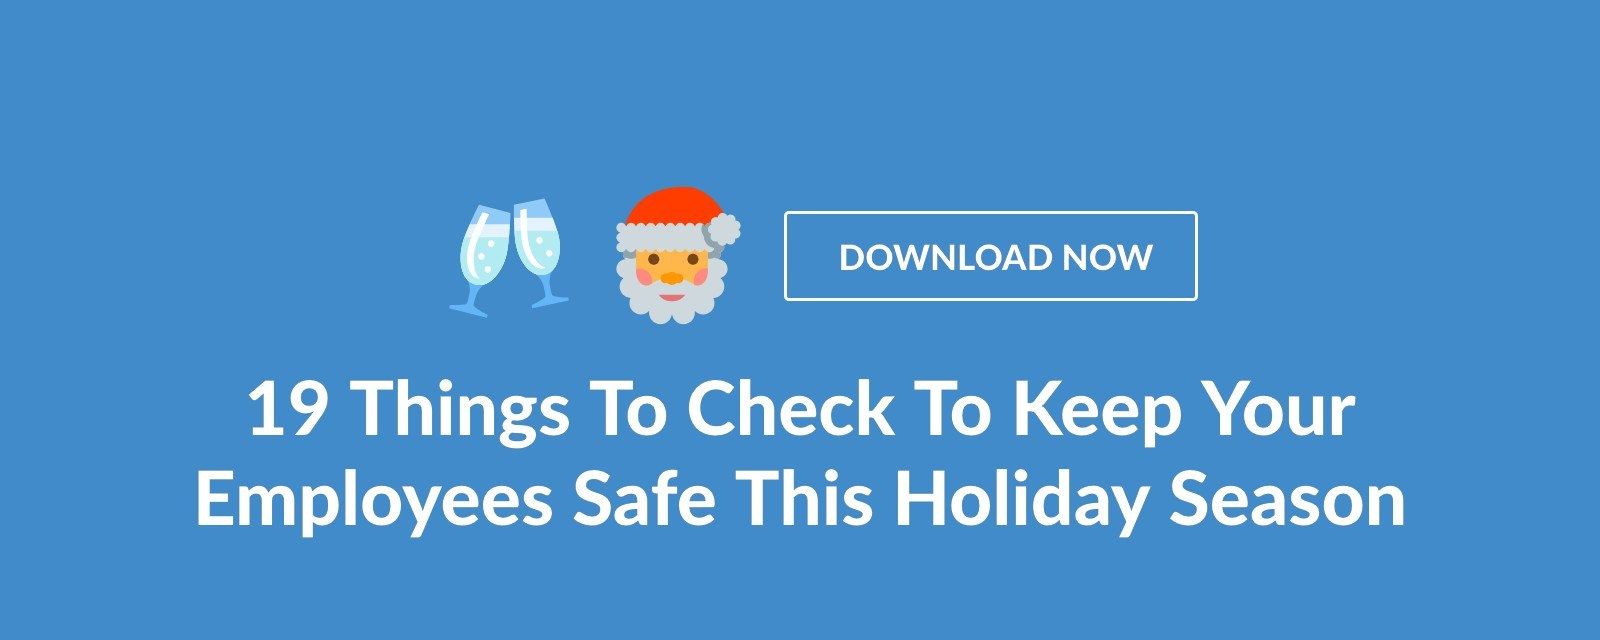 19 Things To Check To Keep Your Employees Safe This Holiday Season